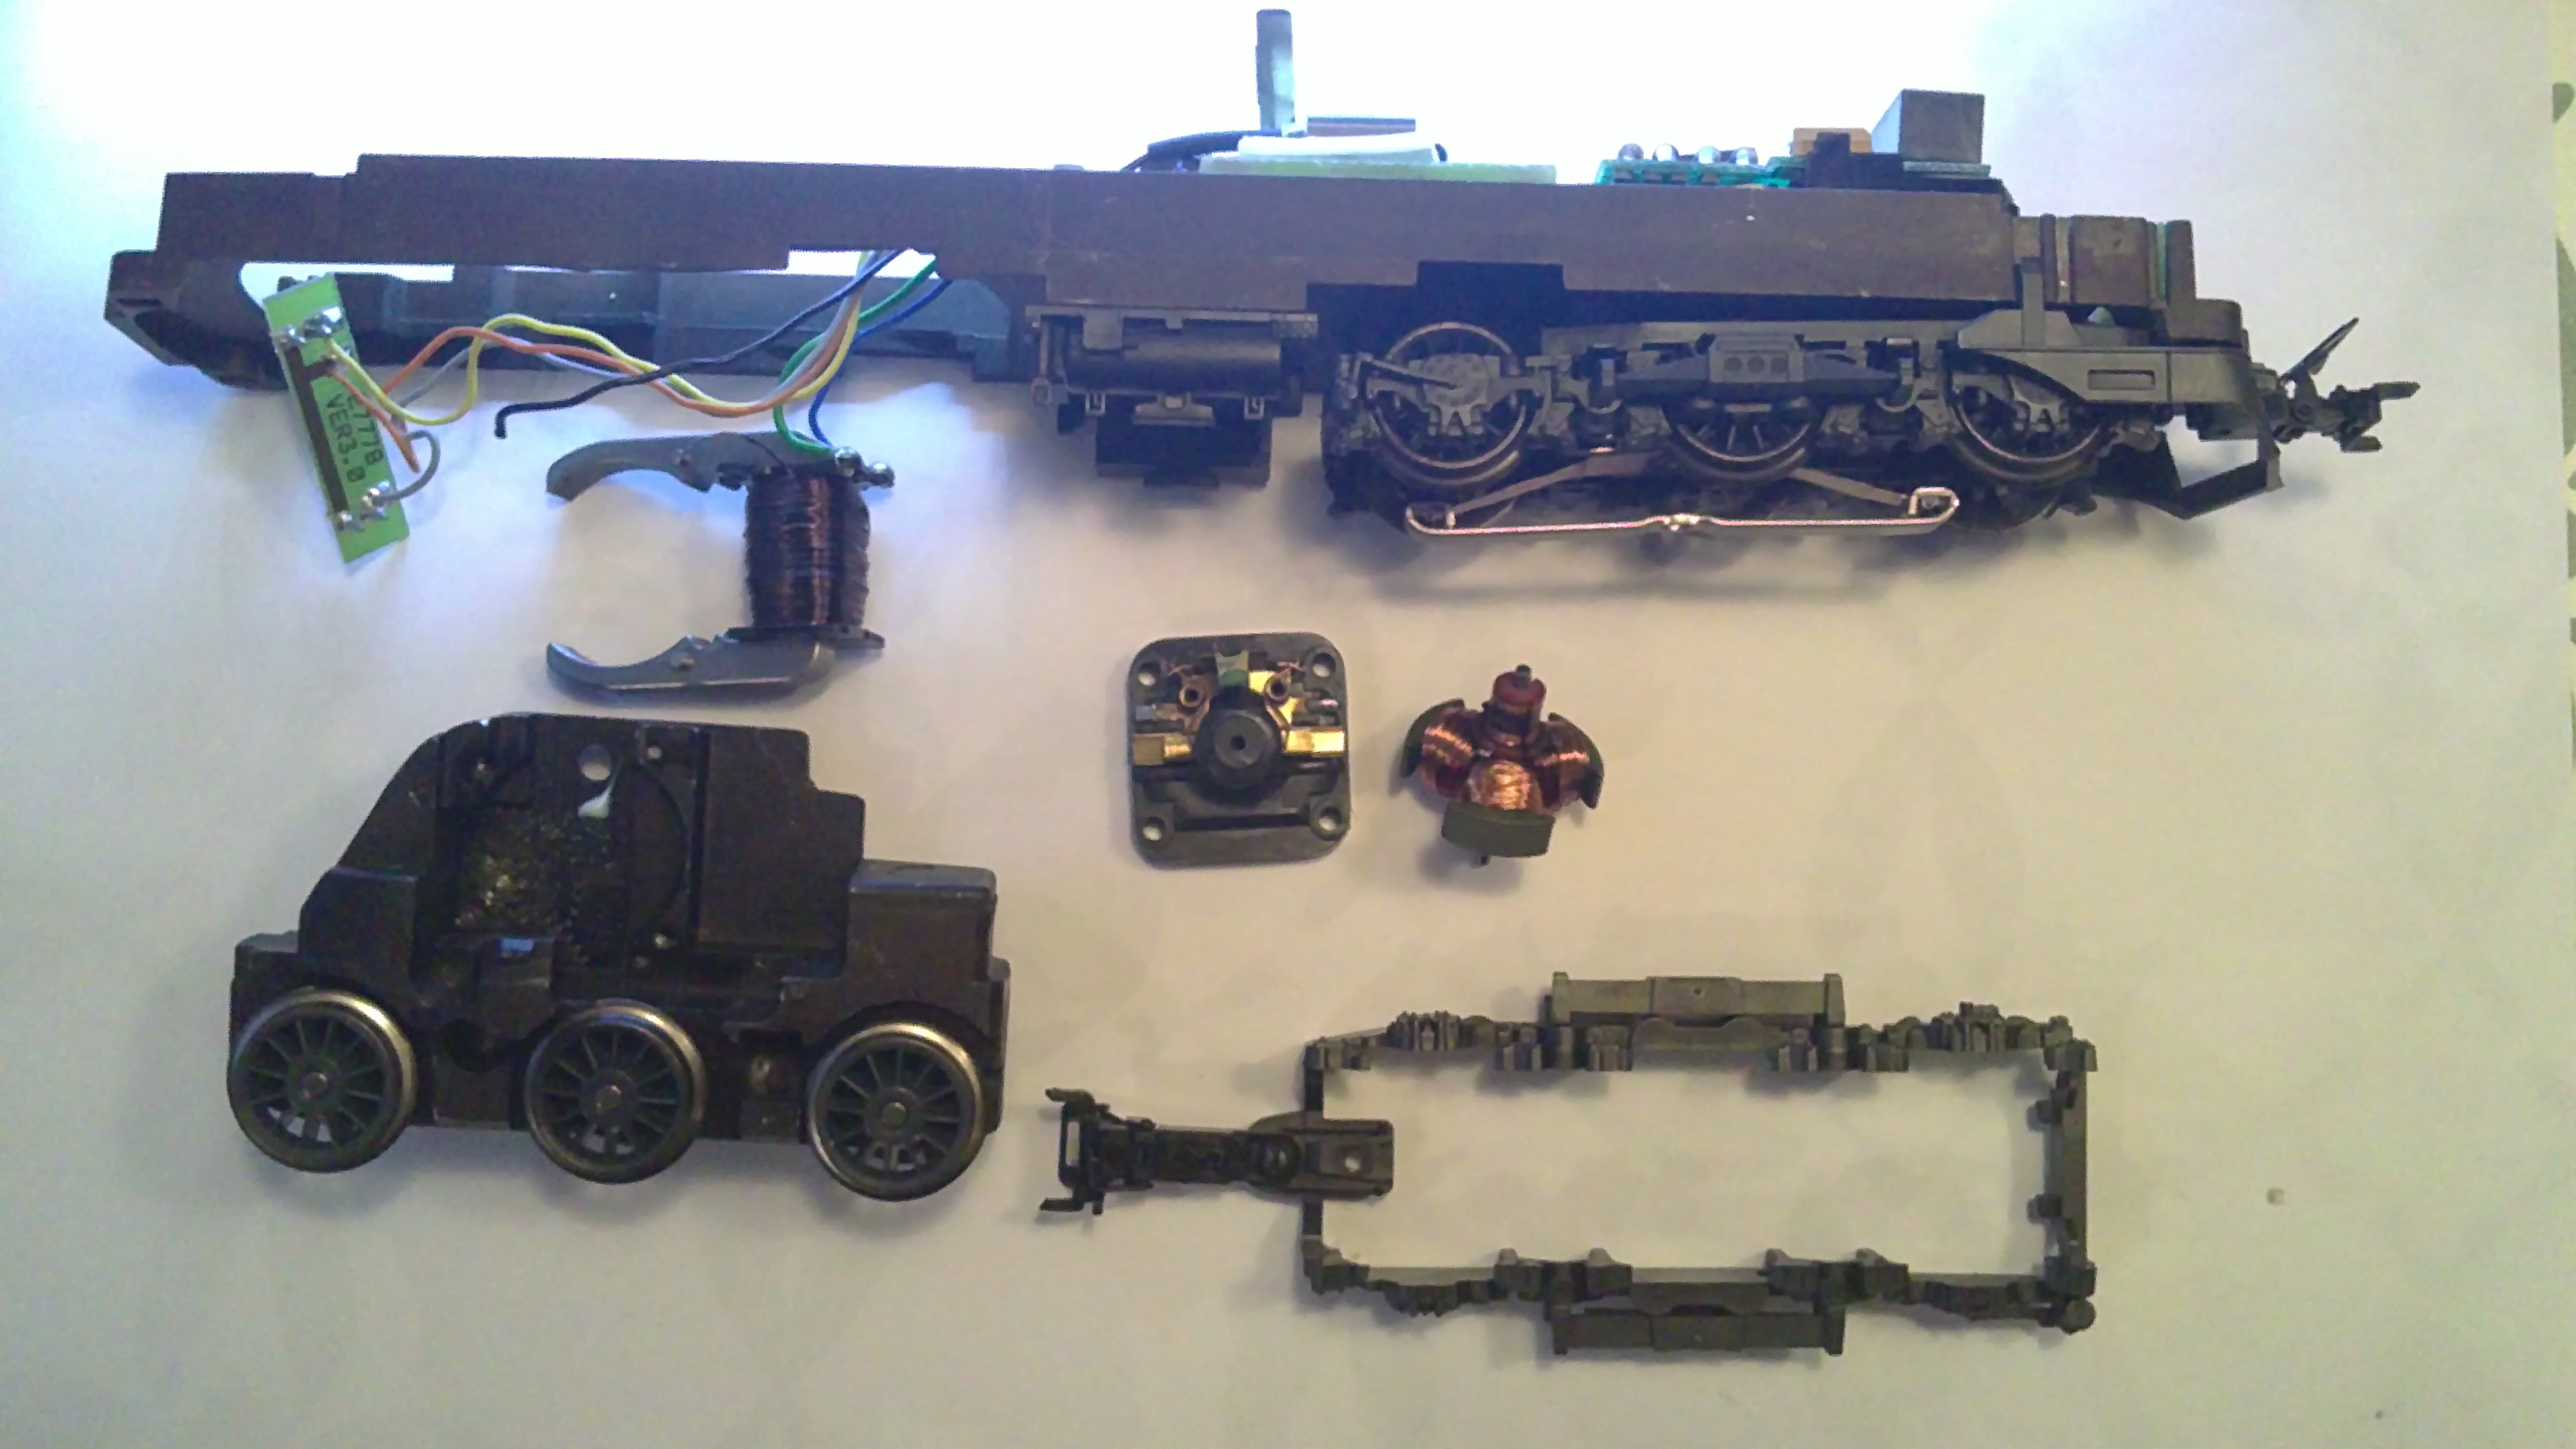 Mrklin 3338 Peters Model Train Page Wire Harness Magnets All Motorparts Now Removed From The Truck Magnet And Pc Bord For Light Bulbs Are Still Connected To